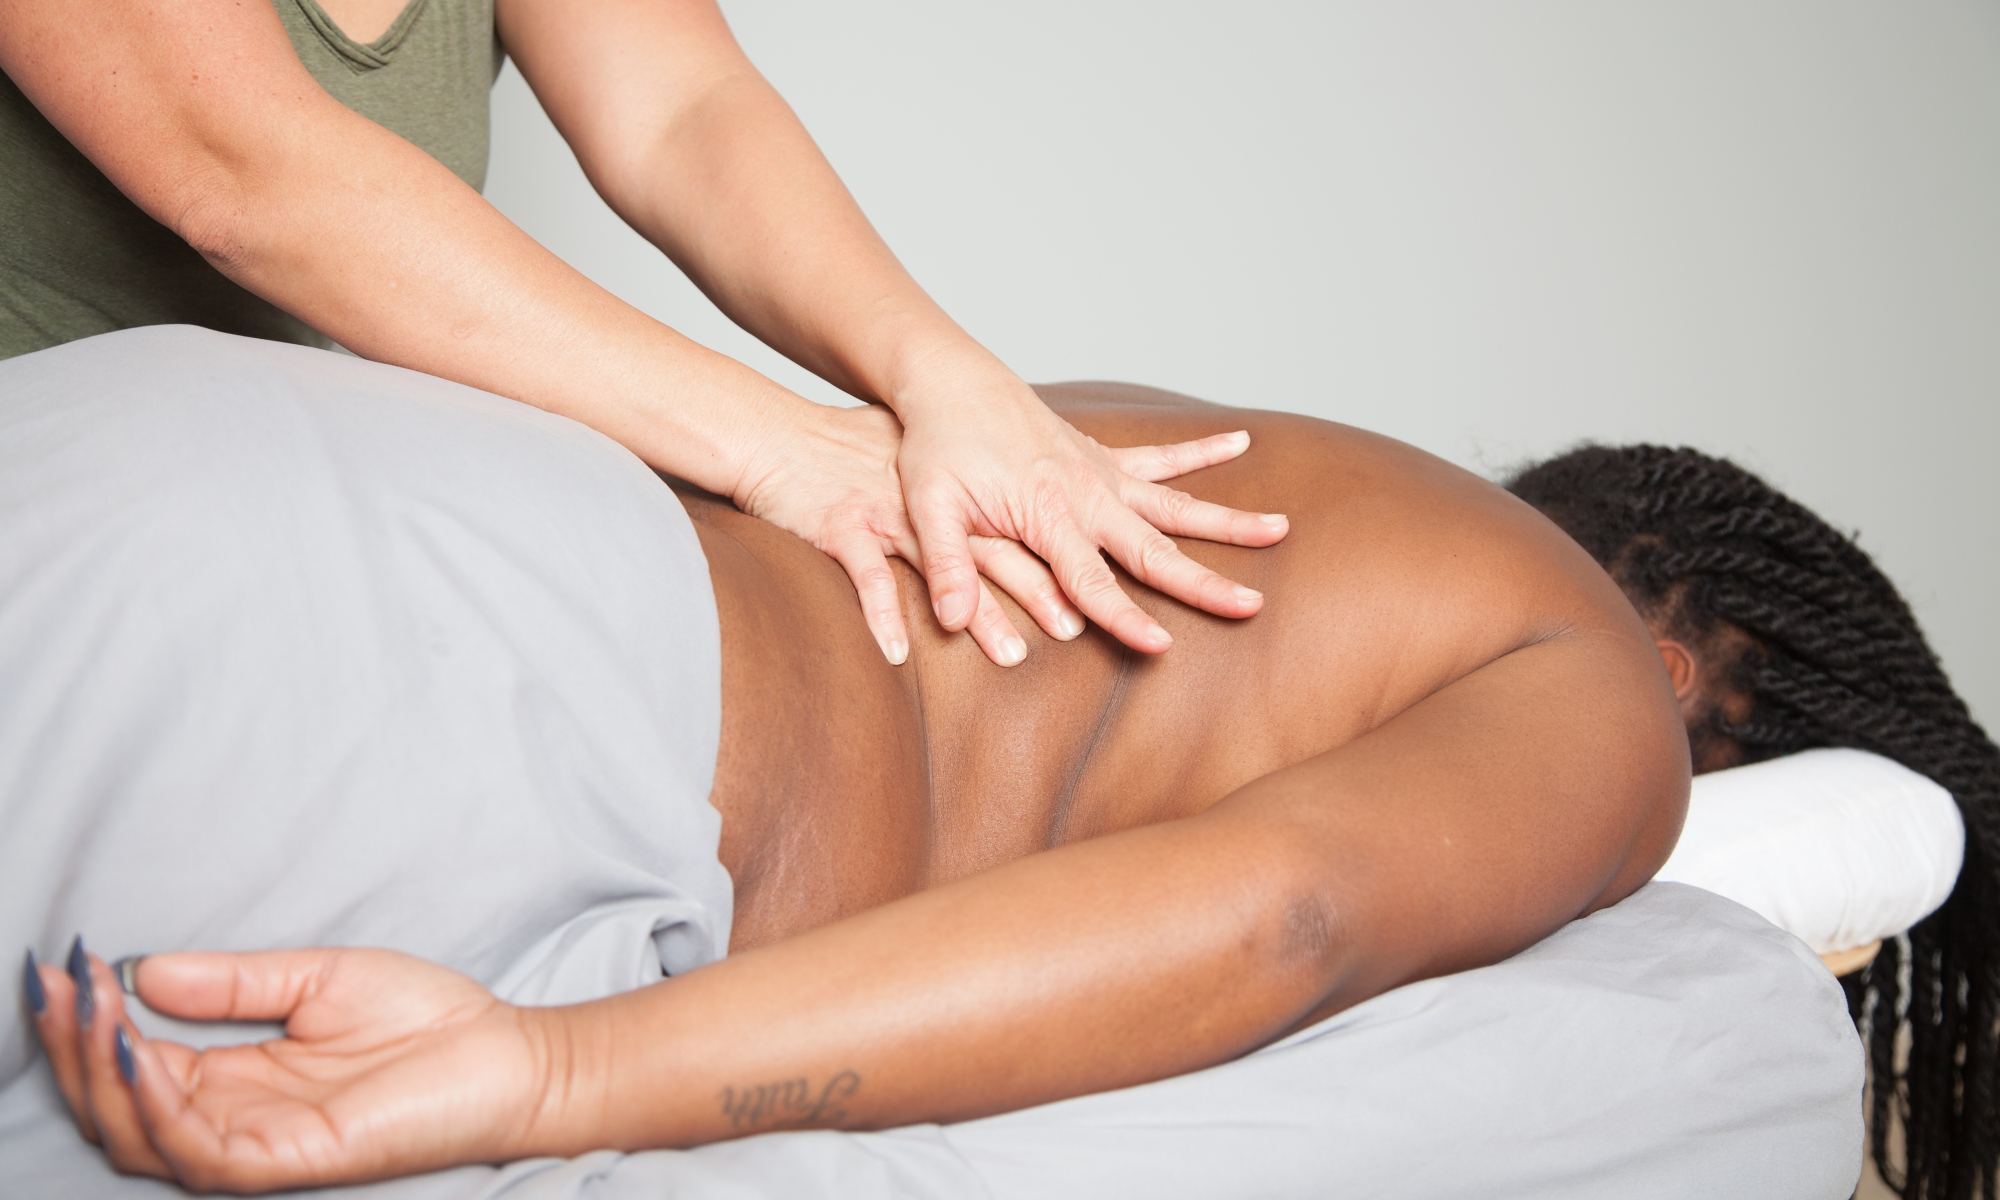 client having massage on their mid-back.